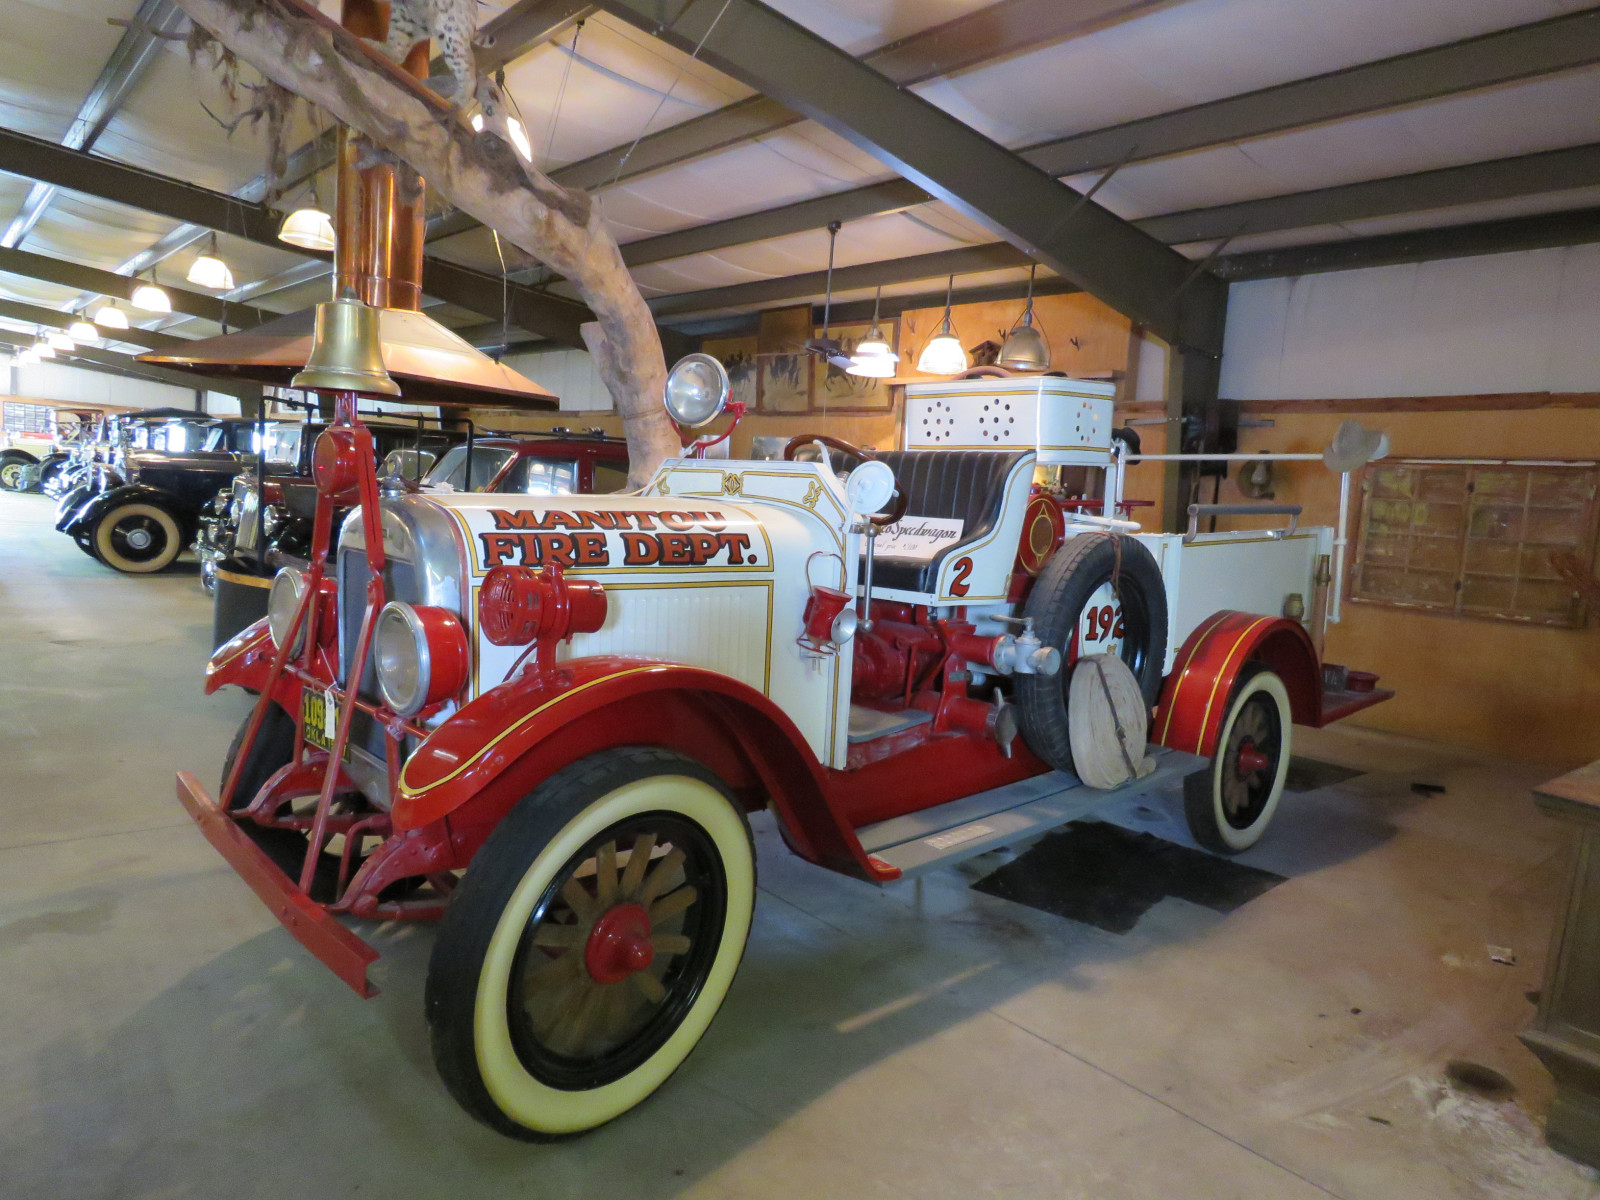 1927 REO Speed Wagon Fire Truck T6W99483 - Image 19